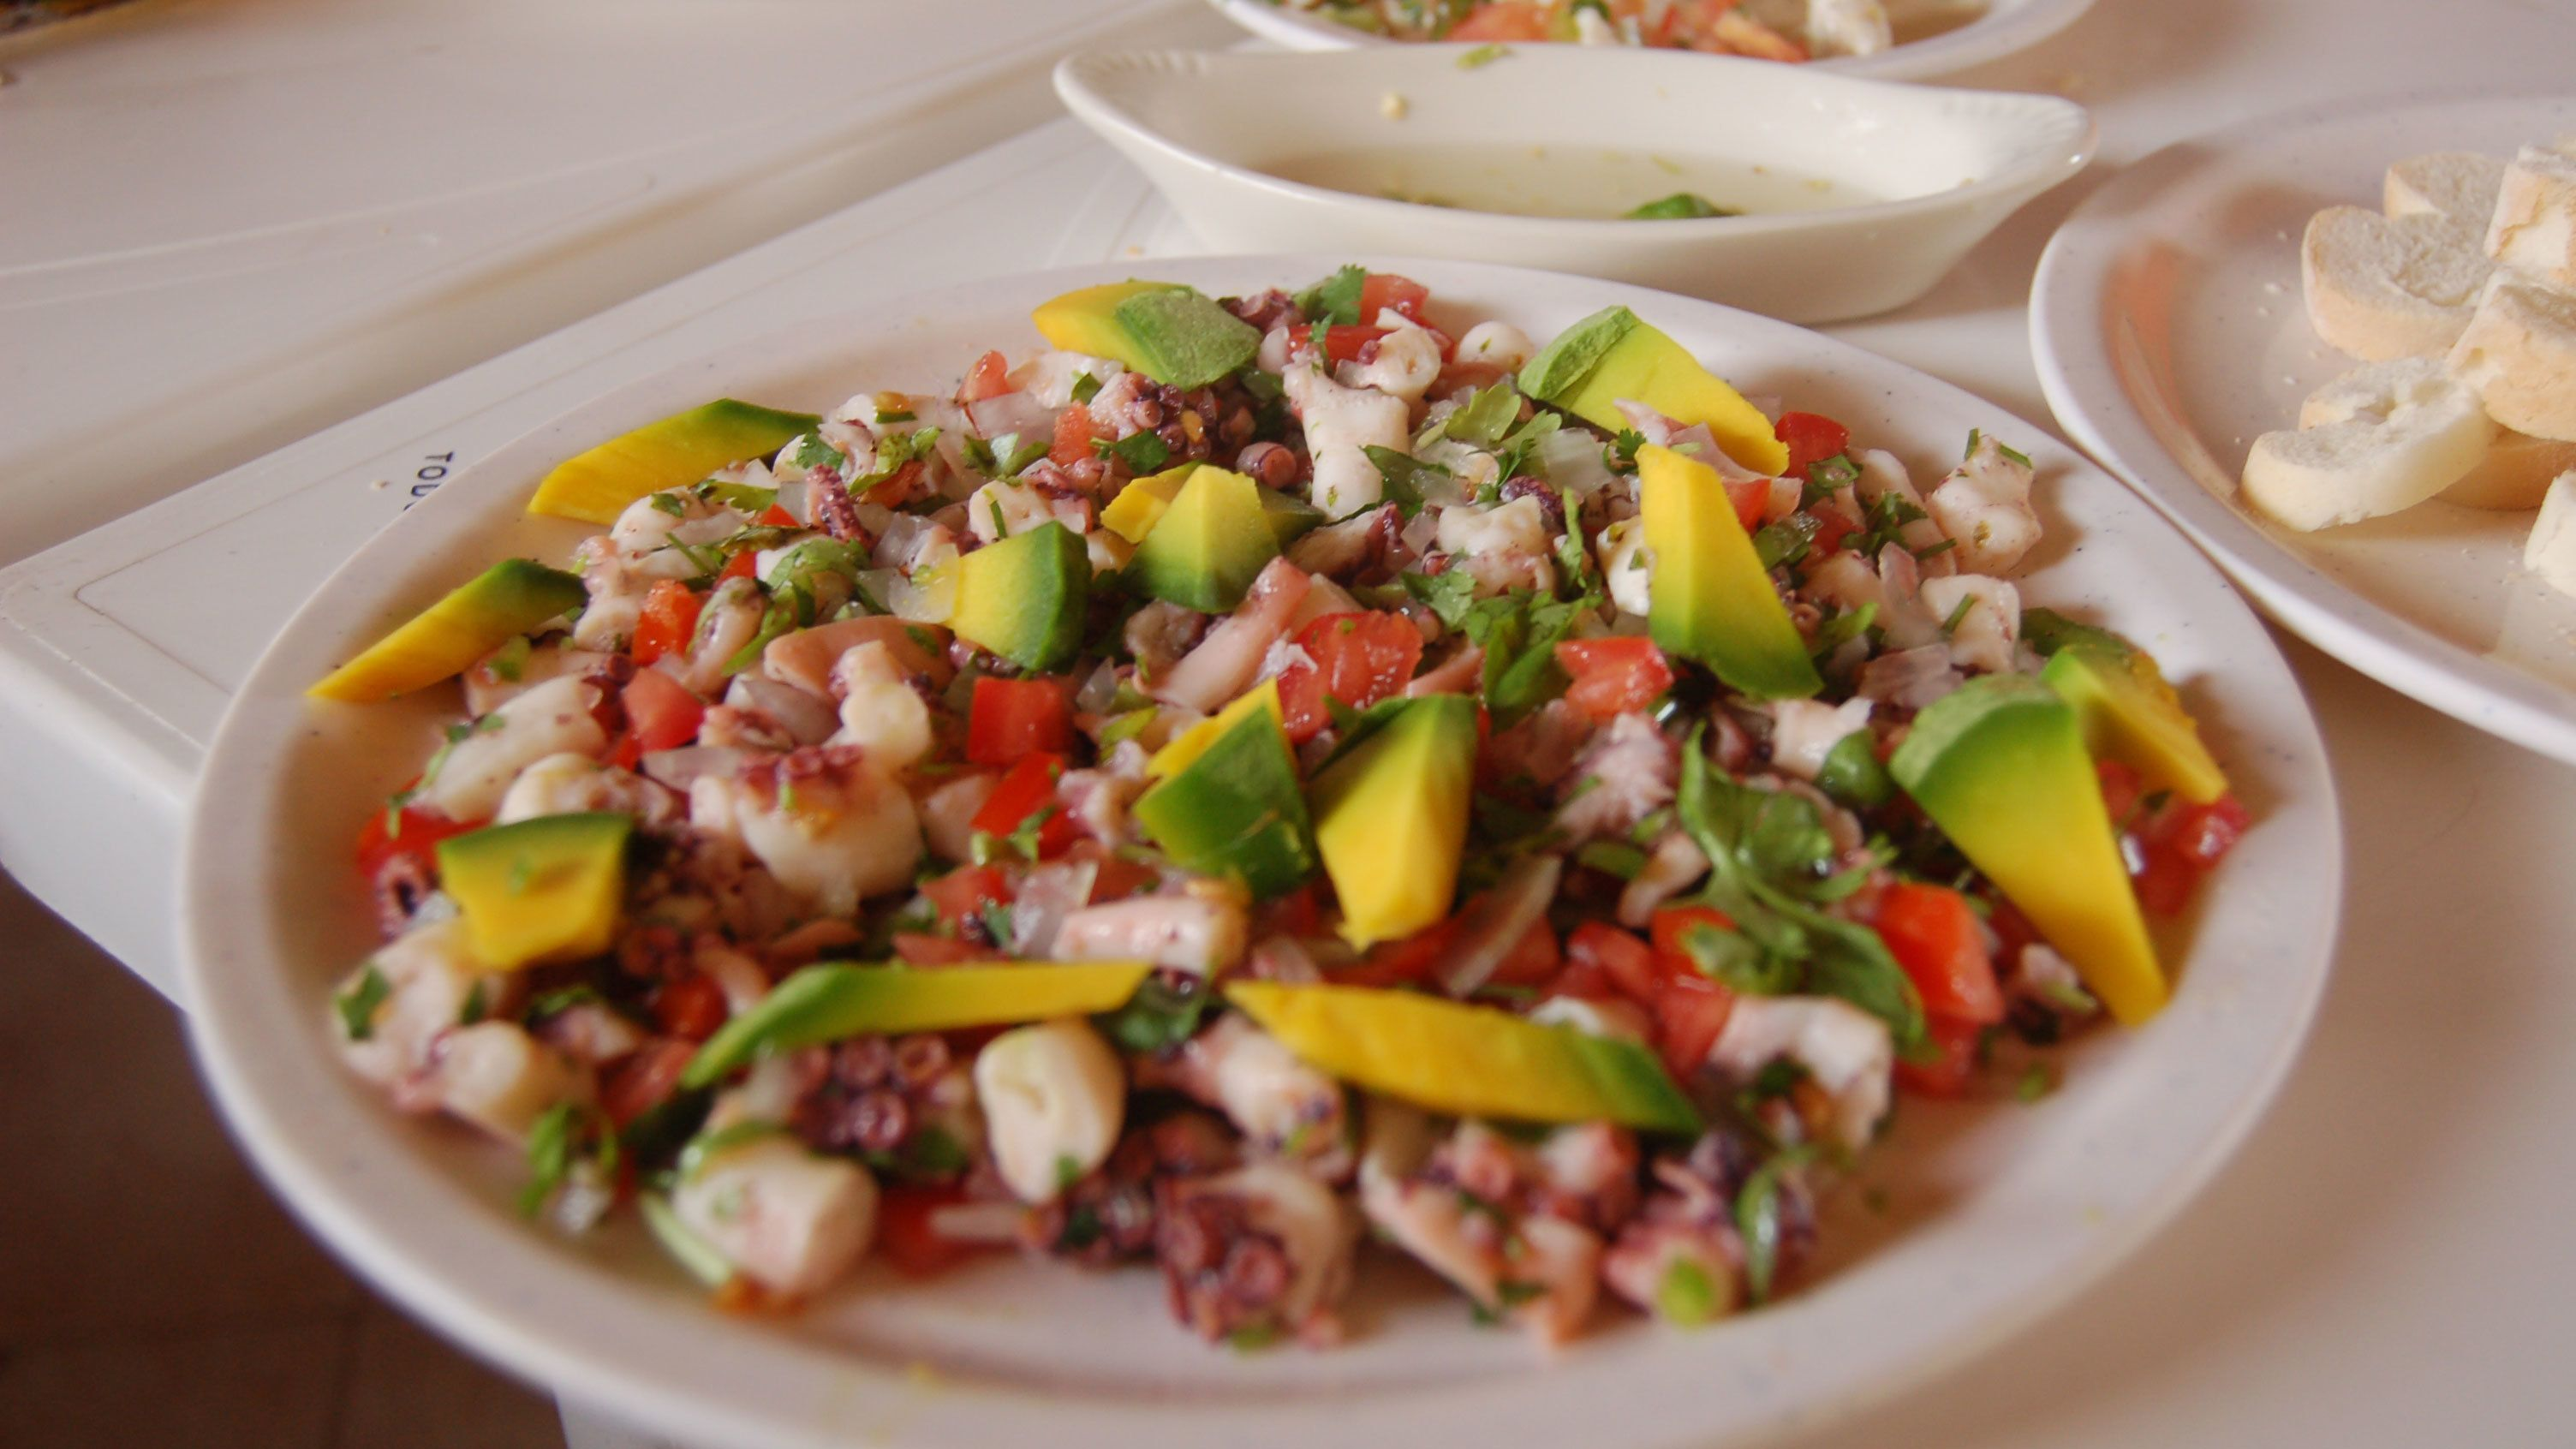 Ceviche made from fresh local ingredients